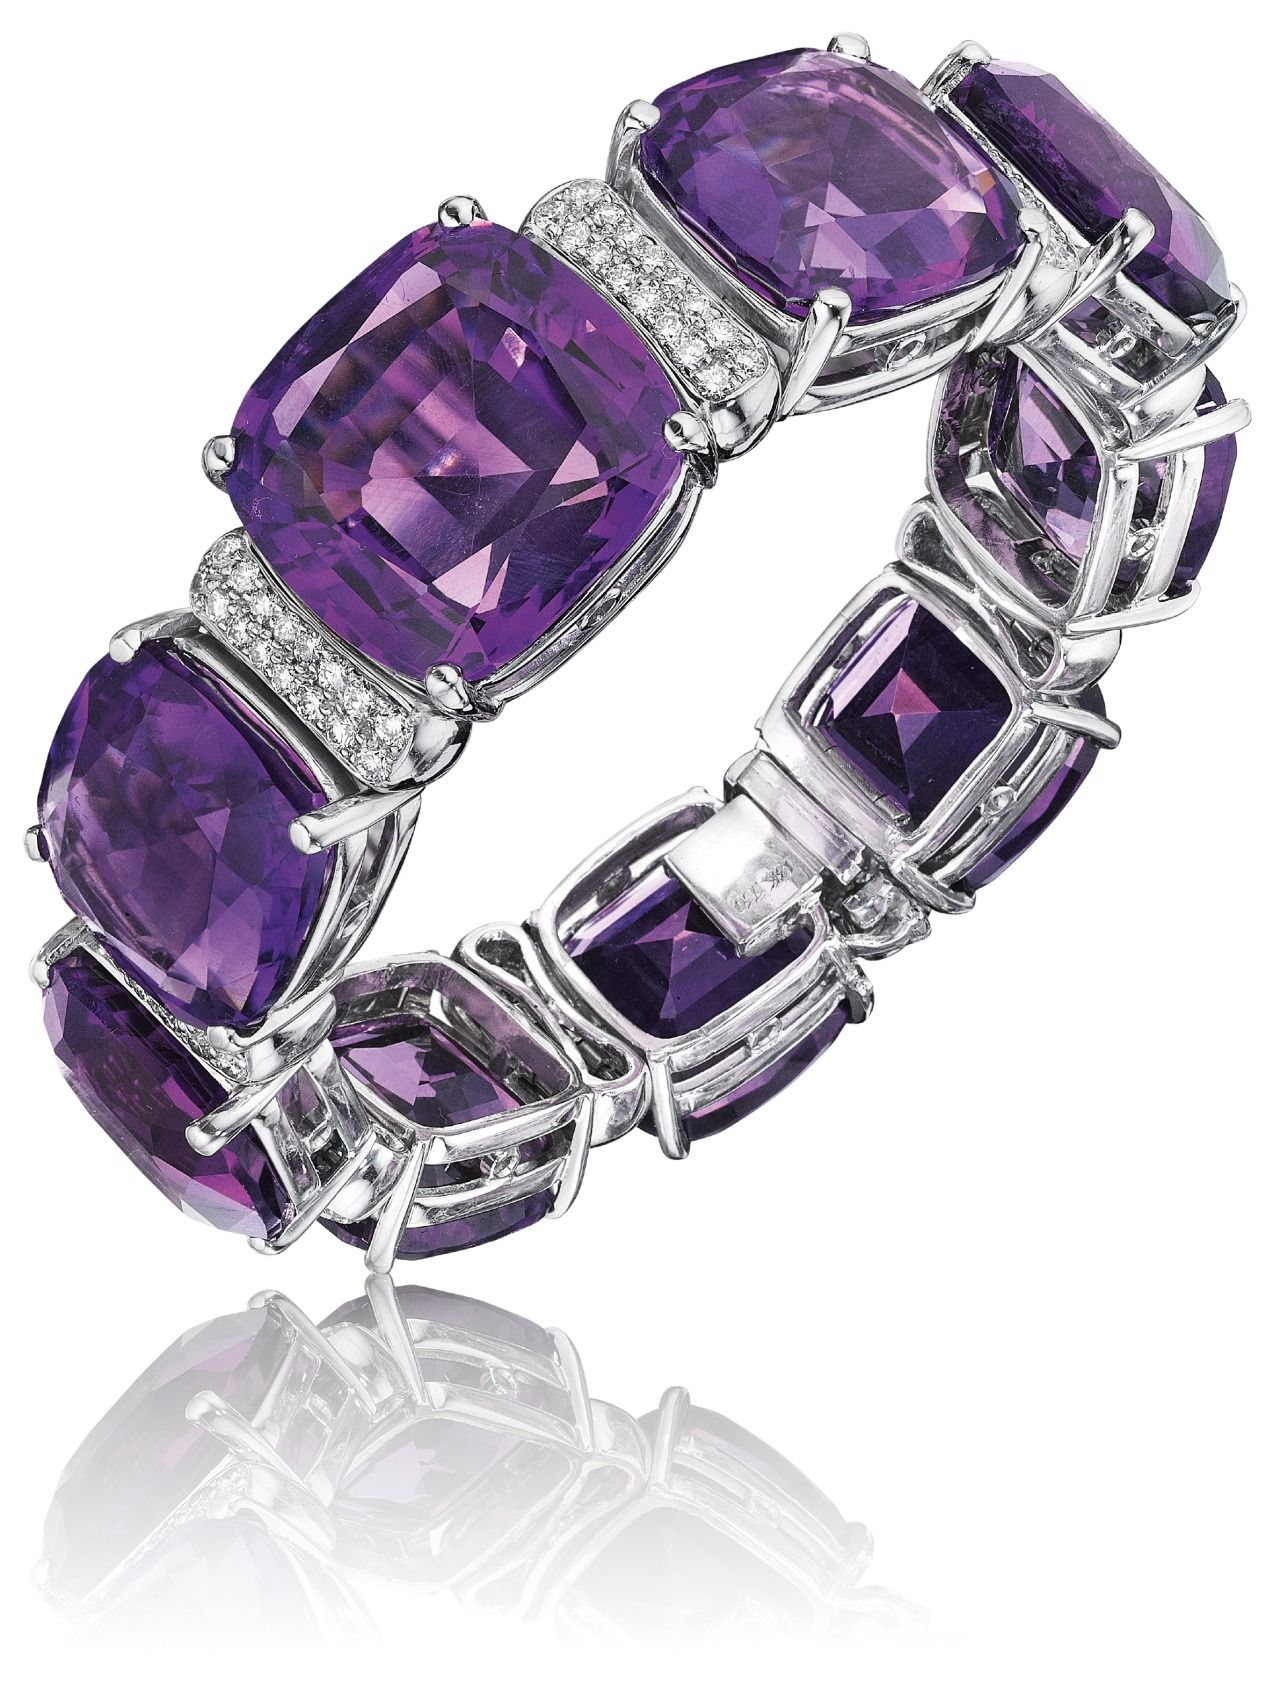 An Amethyst and Diamond Bracelet. Designed as a series of alternating cushion-cut amethysts, weighing approximately 206.62 carats total, and pavé-set circular-cut diamond spacers, mounted in 18K white...